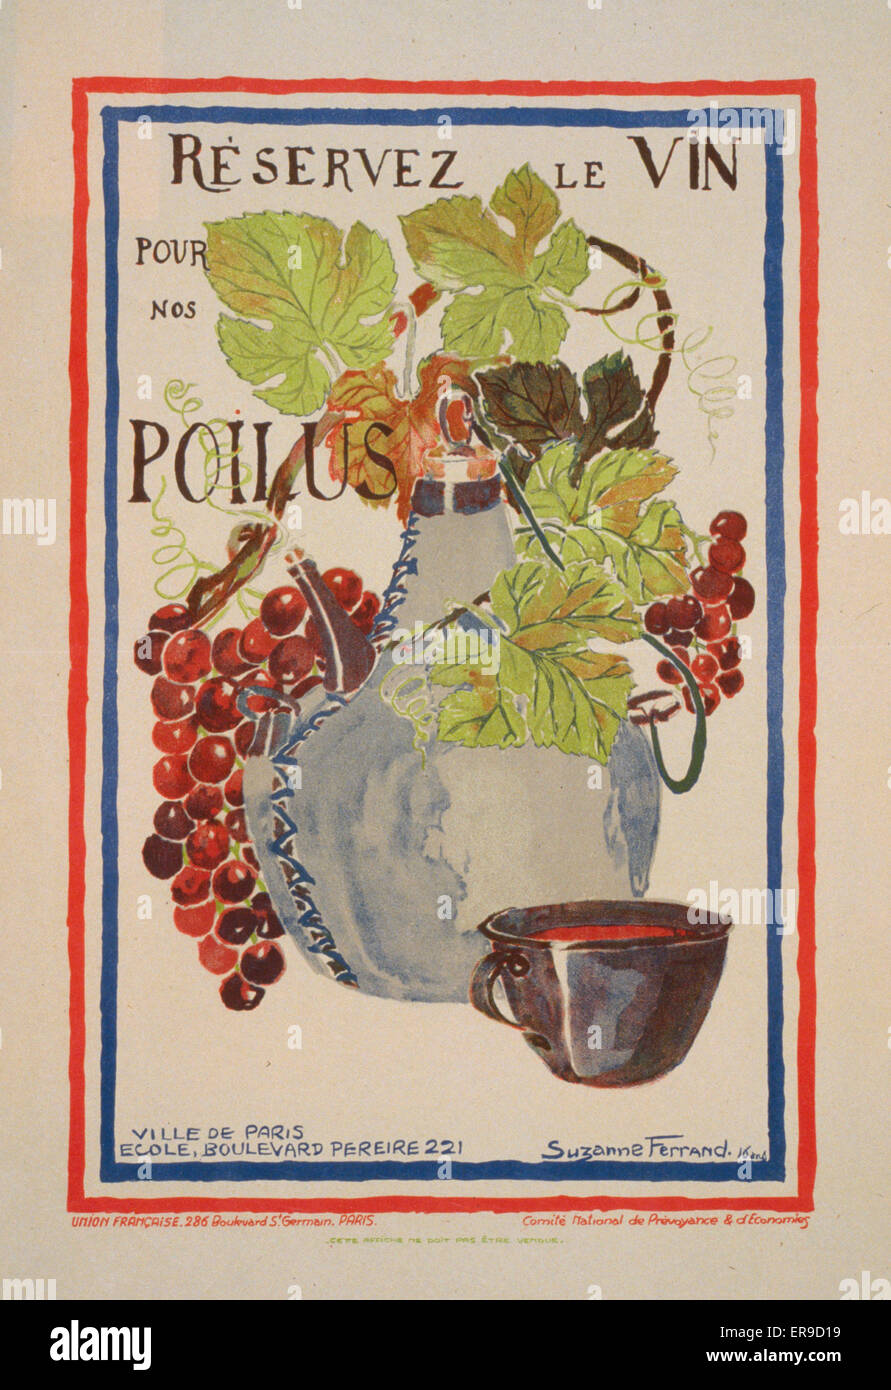 Reservez le vin pour nos poilus. A jug of wine surrounded by bunches of grapes and a cup filled with wine next to - Stock Image